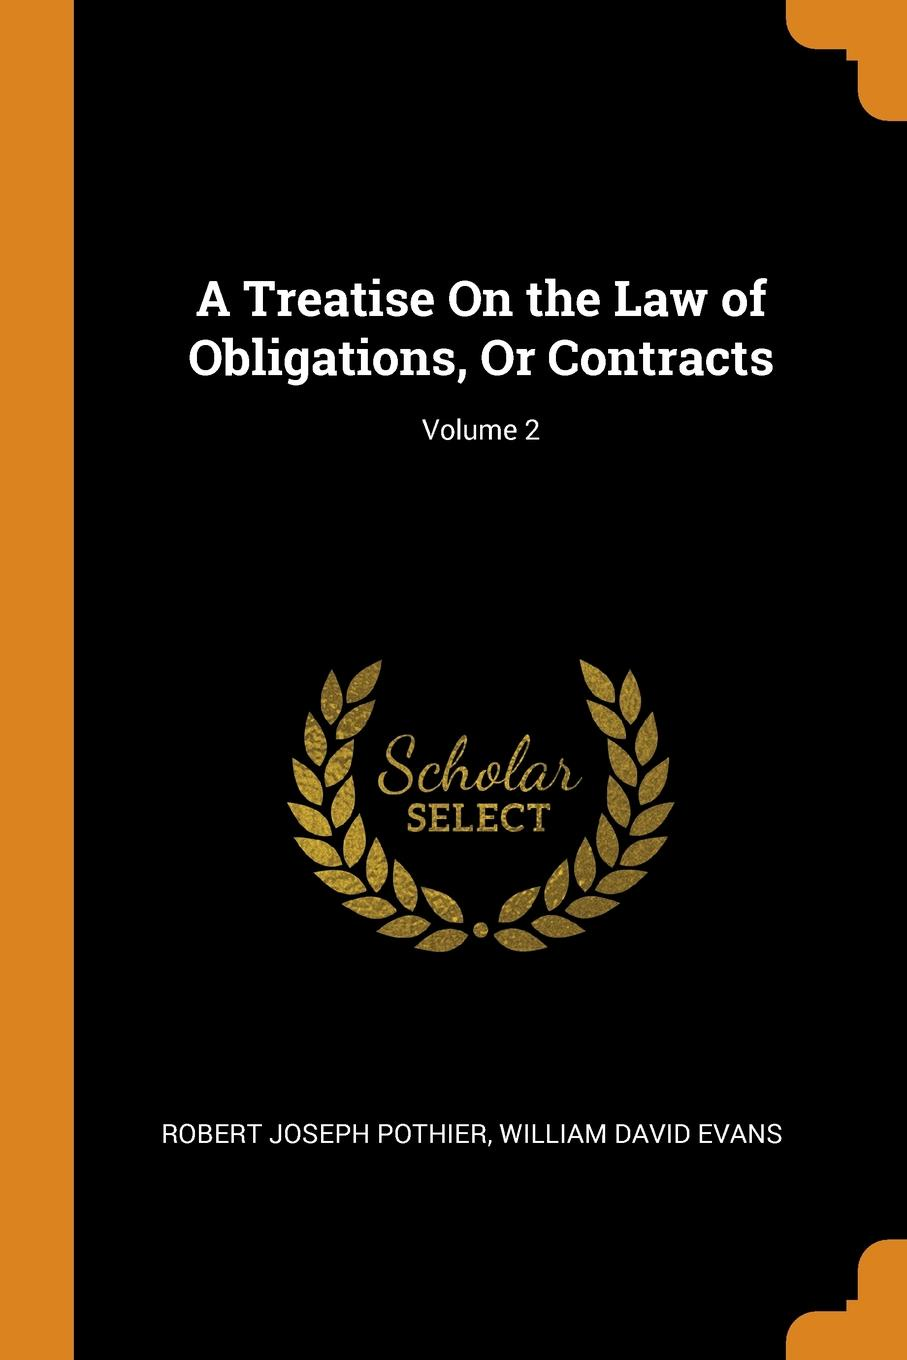 A Treatise On the Law of Obligations, Or Contracts; Volume 2. Robert Joseph Pothier, William David Evans